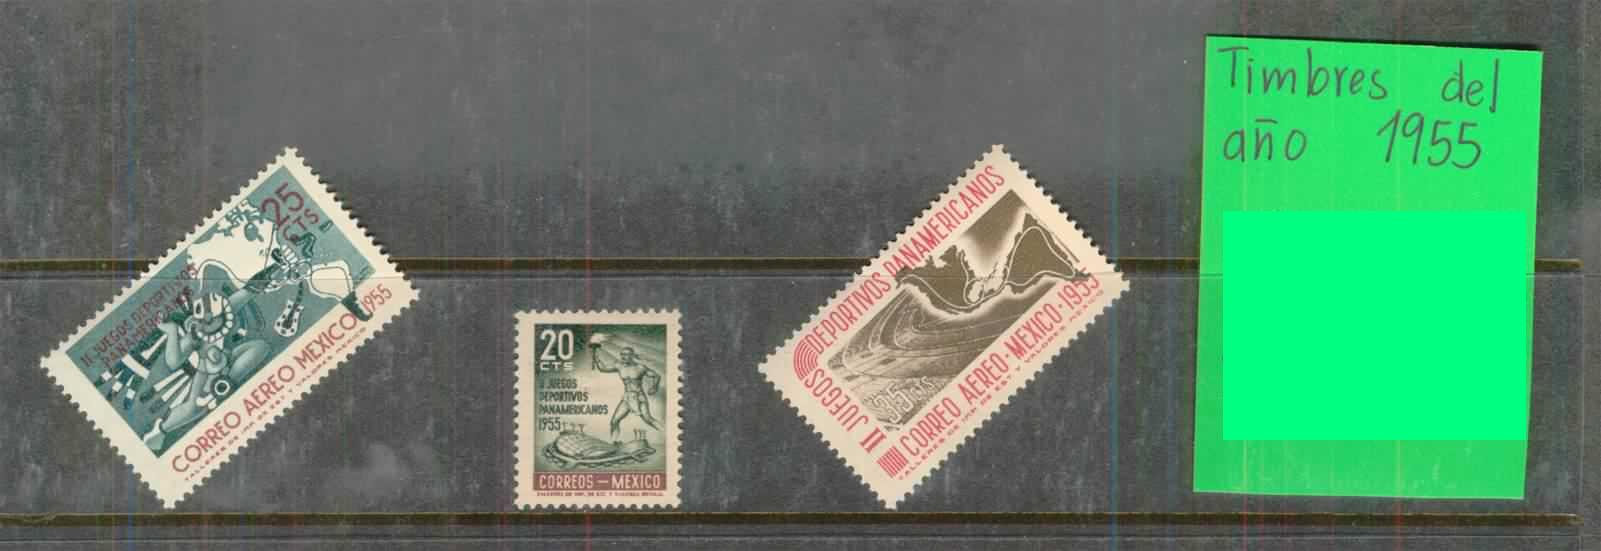 Anualidad Timbres Mexico-55